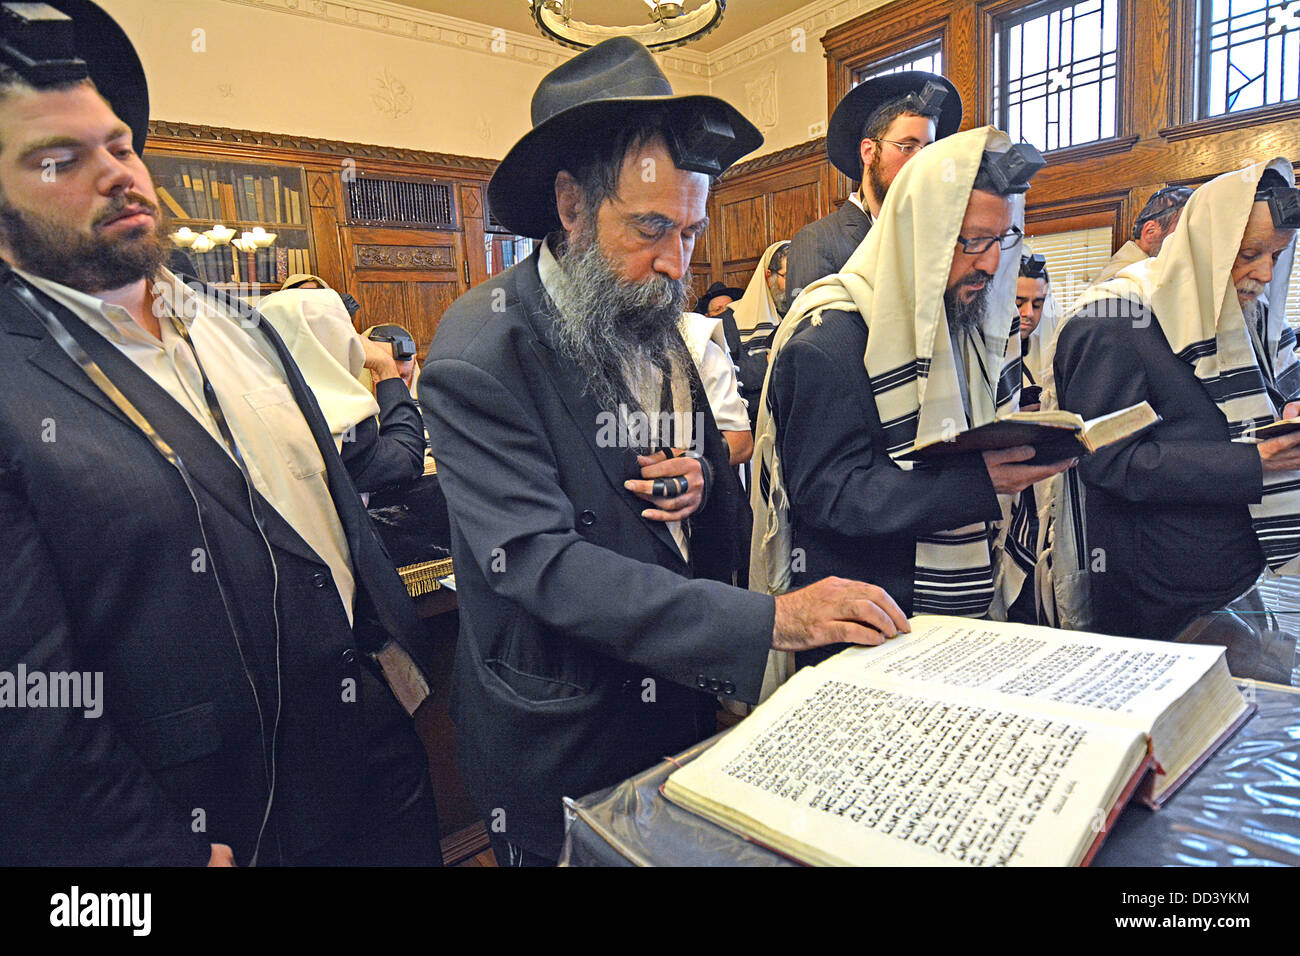 Religious Jewish men pray in the Rebbe's office at Lubavitch Headquarters in Brooklyn, New York. - Stock Image